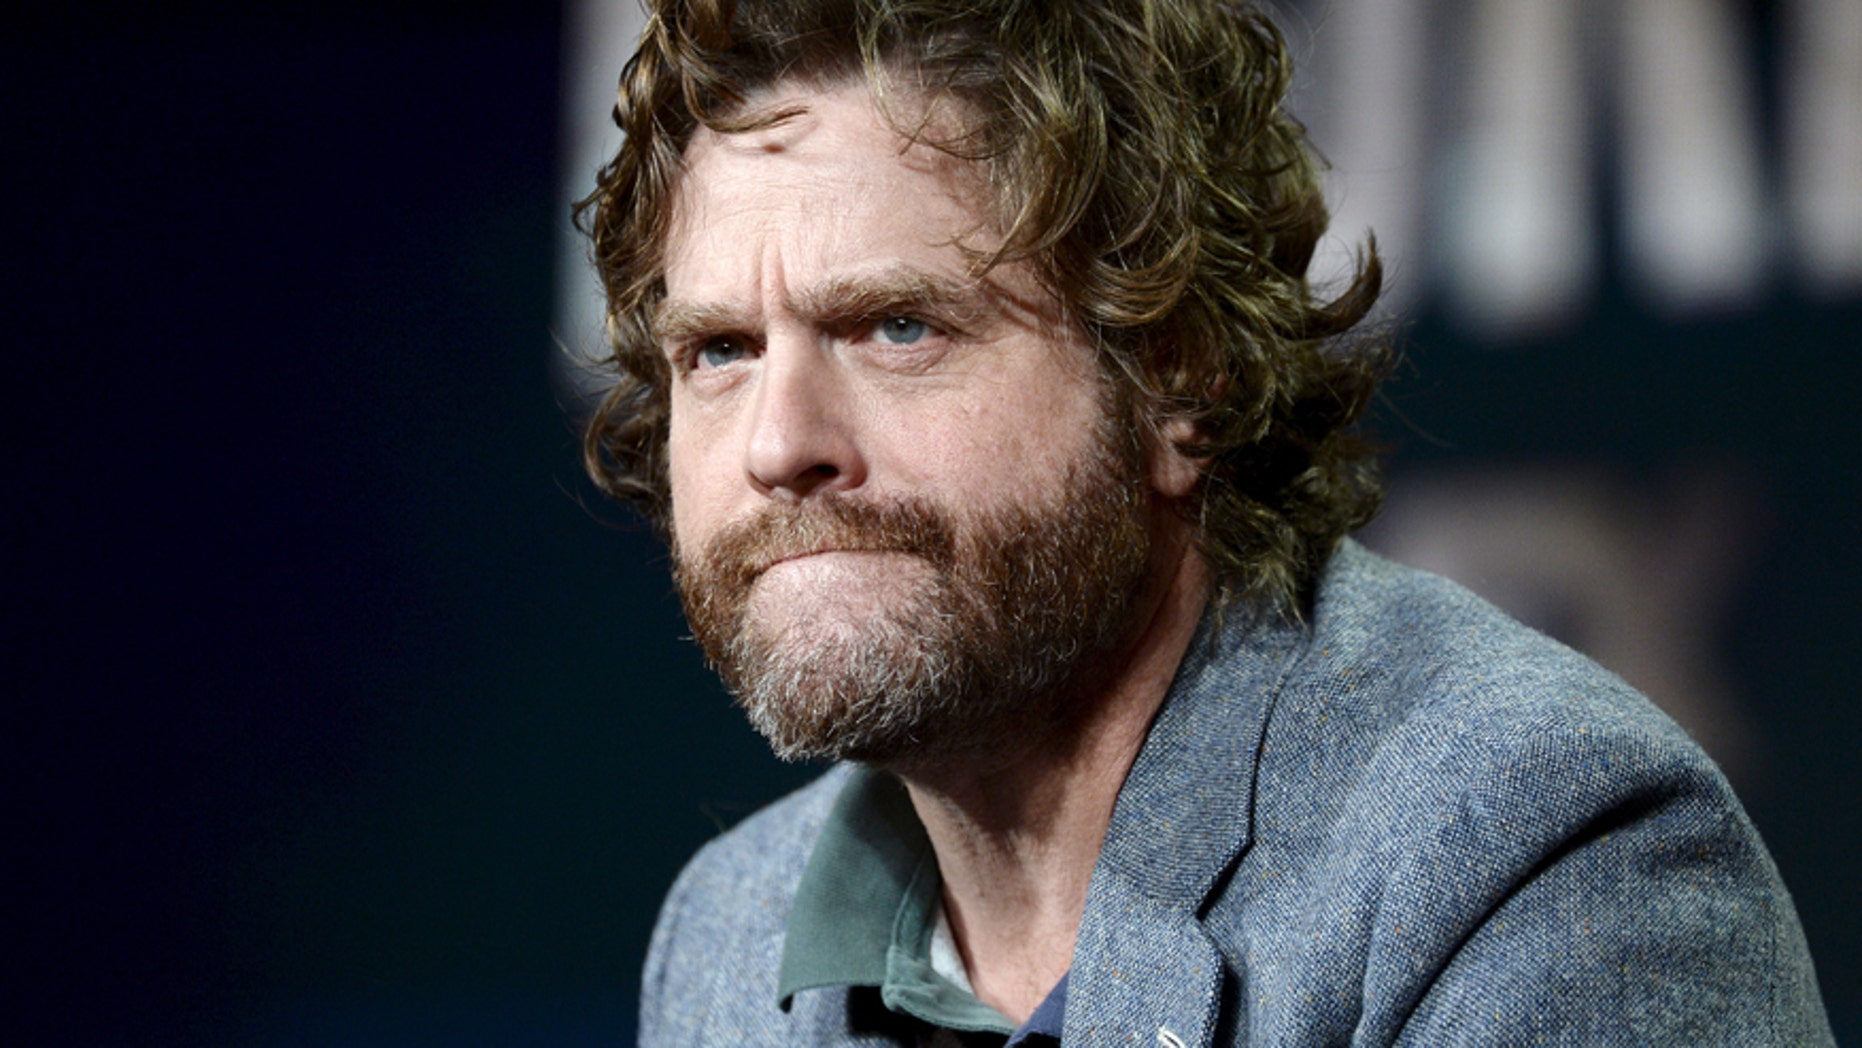 """Cast member Zach Galifianakis participates in a panel for the FX Networks series """"Baskets"""" during the Television Critics Association (TCA) Cable Winter Press Tour in Pasadena, California January 16, 2016."""